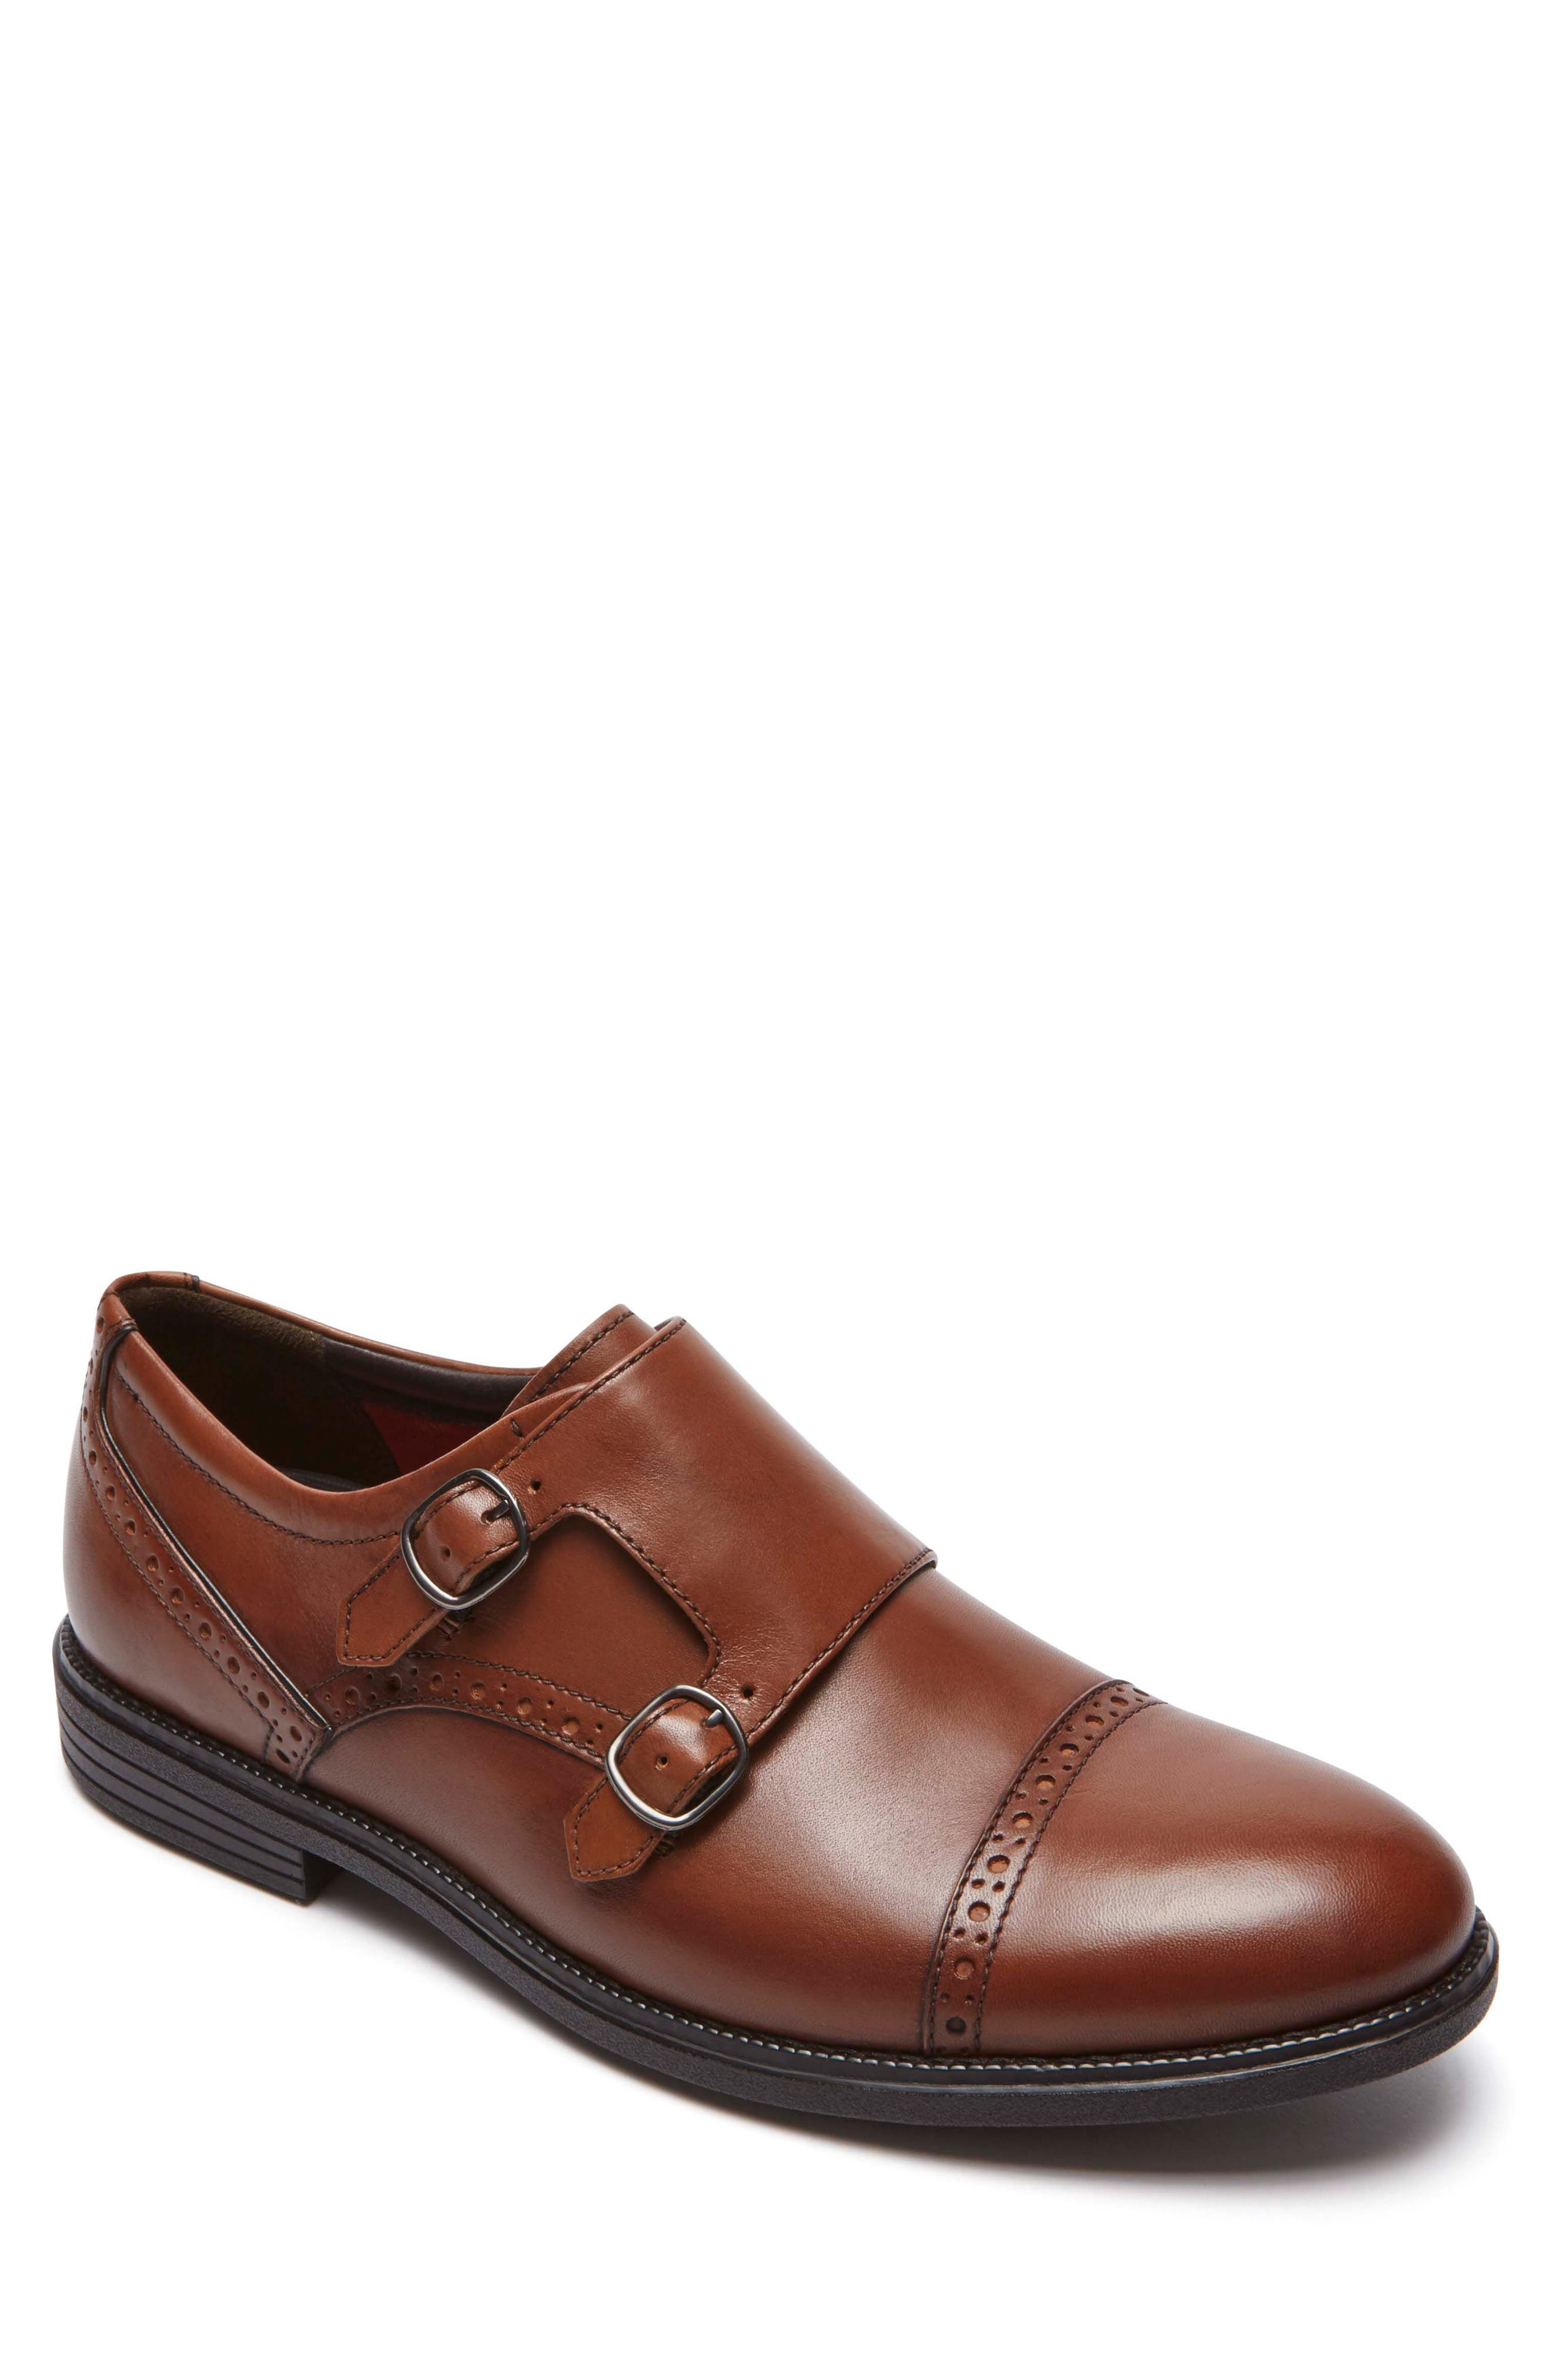 Madson Double Monk Strap Shoe,                             Main thumbnail 1, color,                             Tan Leather